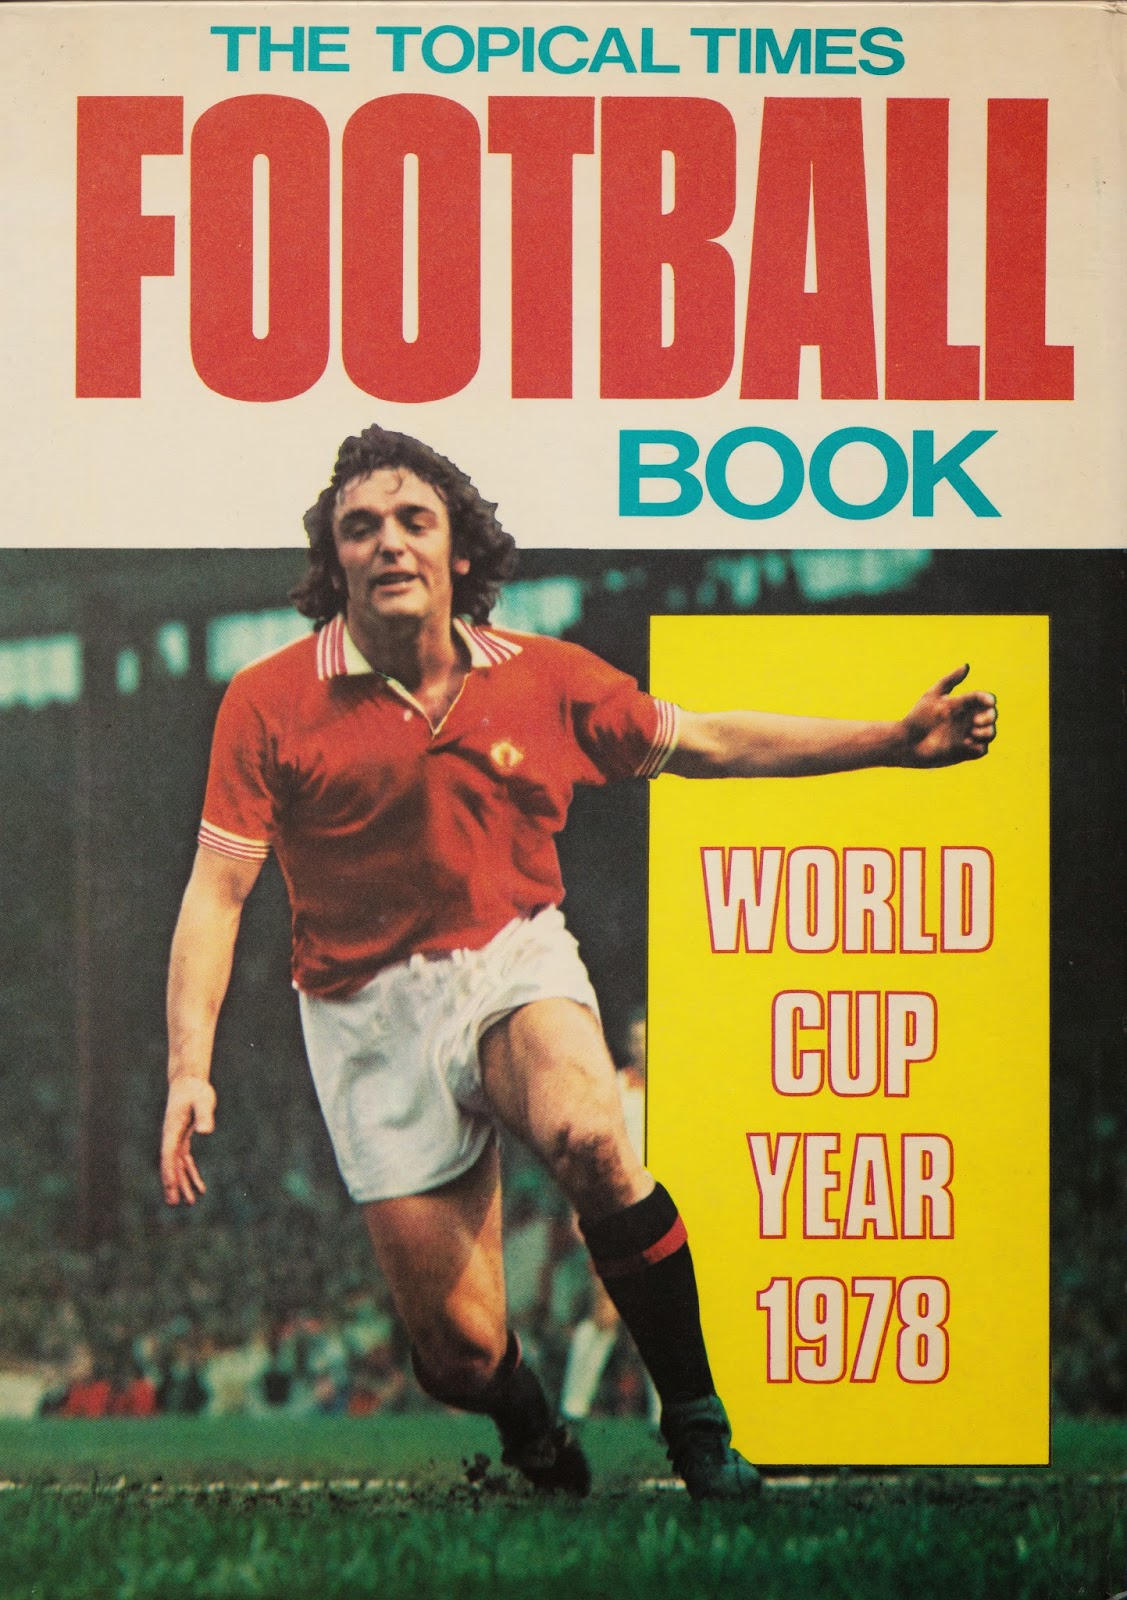 The Topical Times Book - World Cup Year 1978